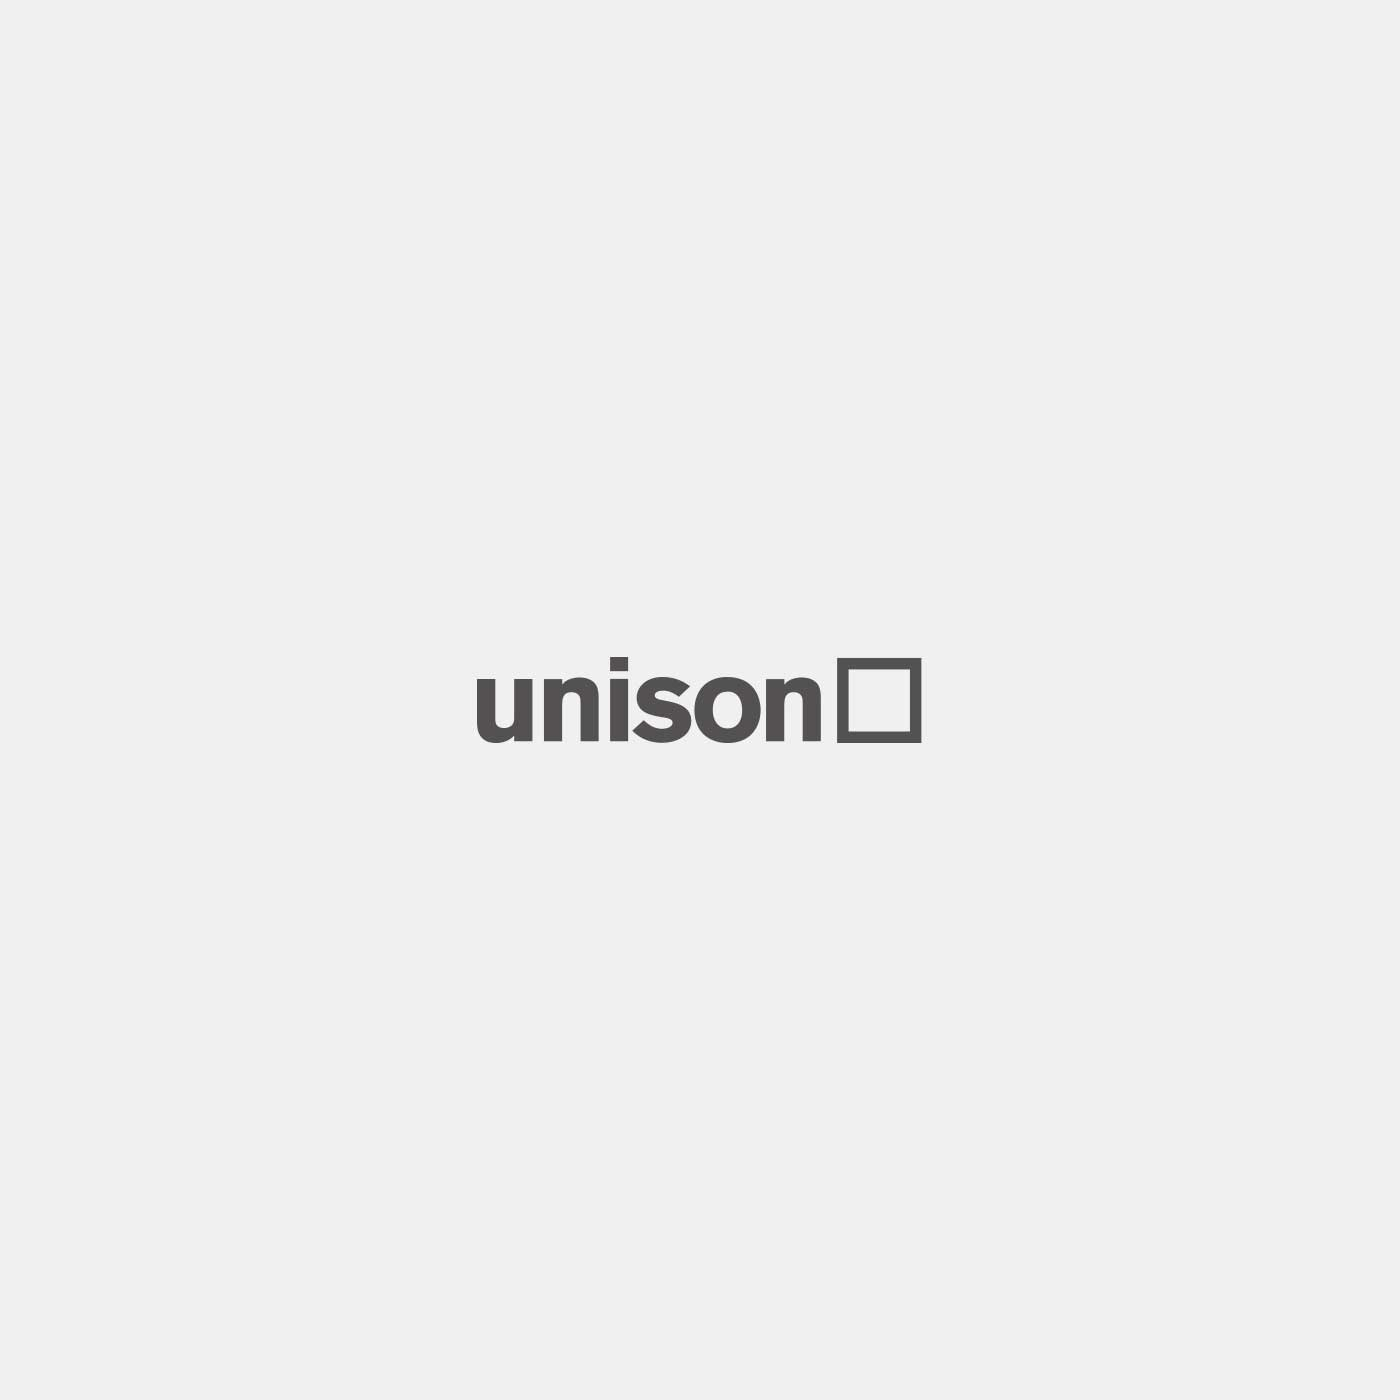 On The Blog: Marcy Nesting Bowls